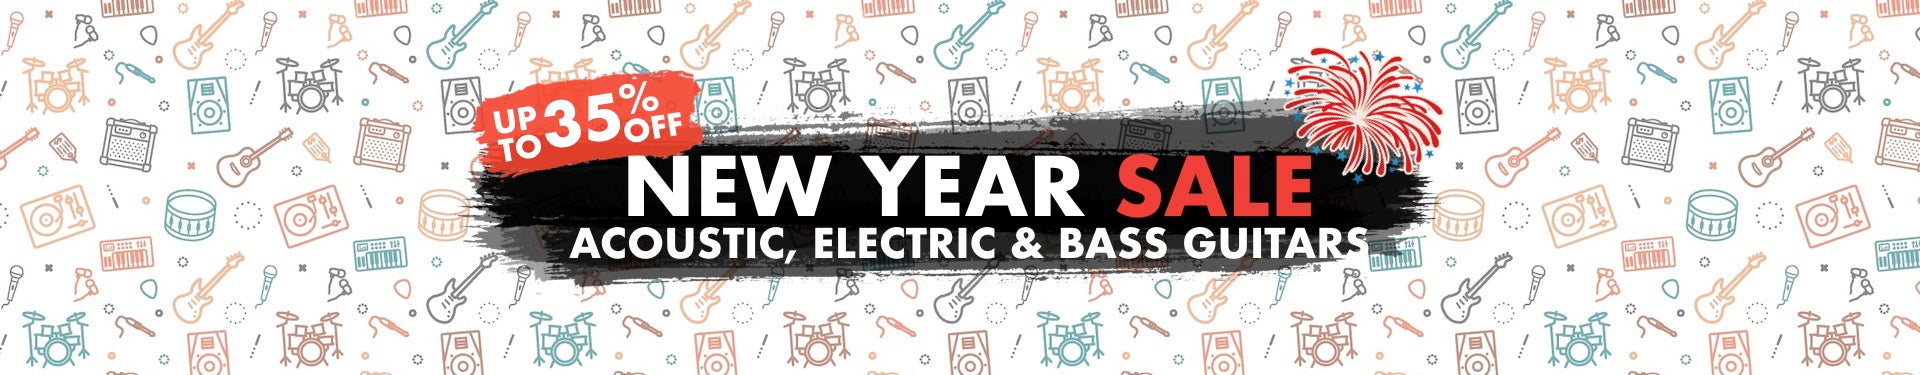 New Year Acoustic, Electric & Bass Guitars